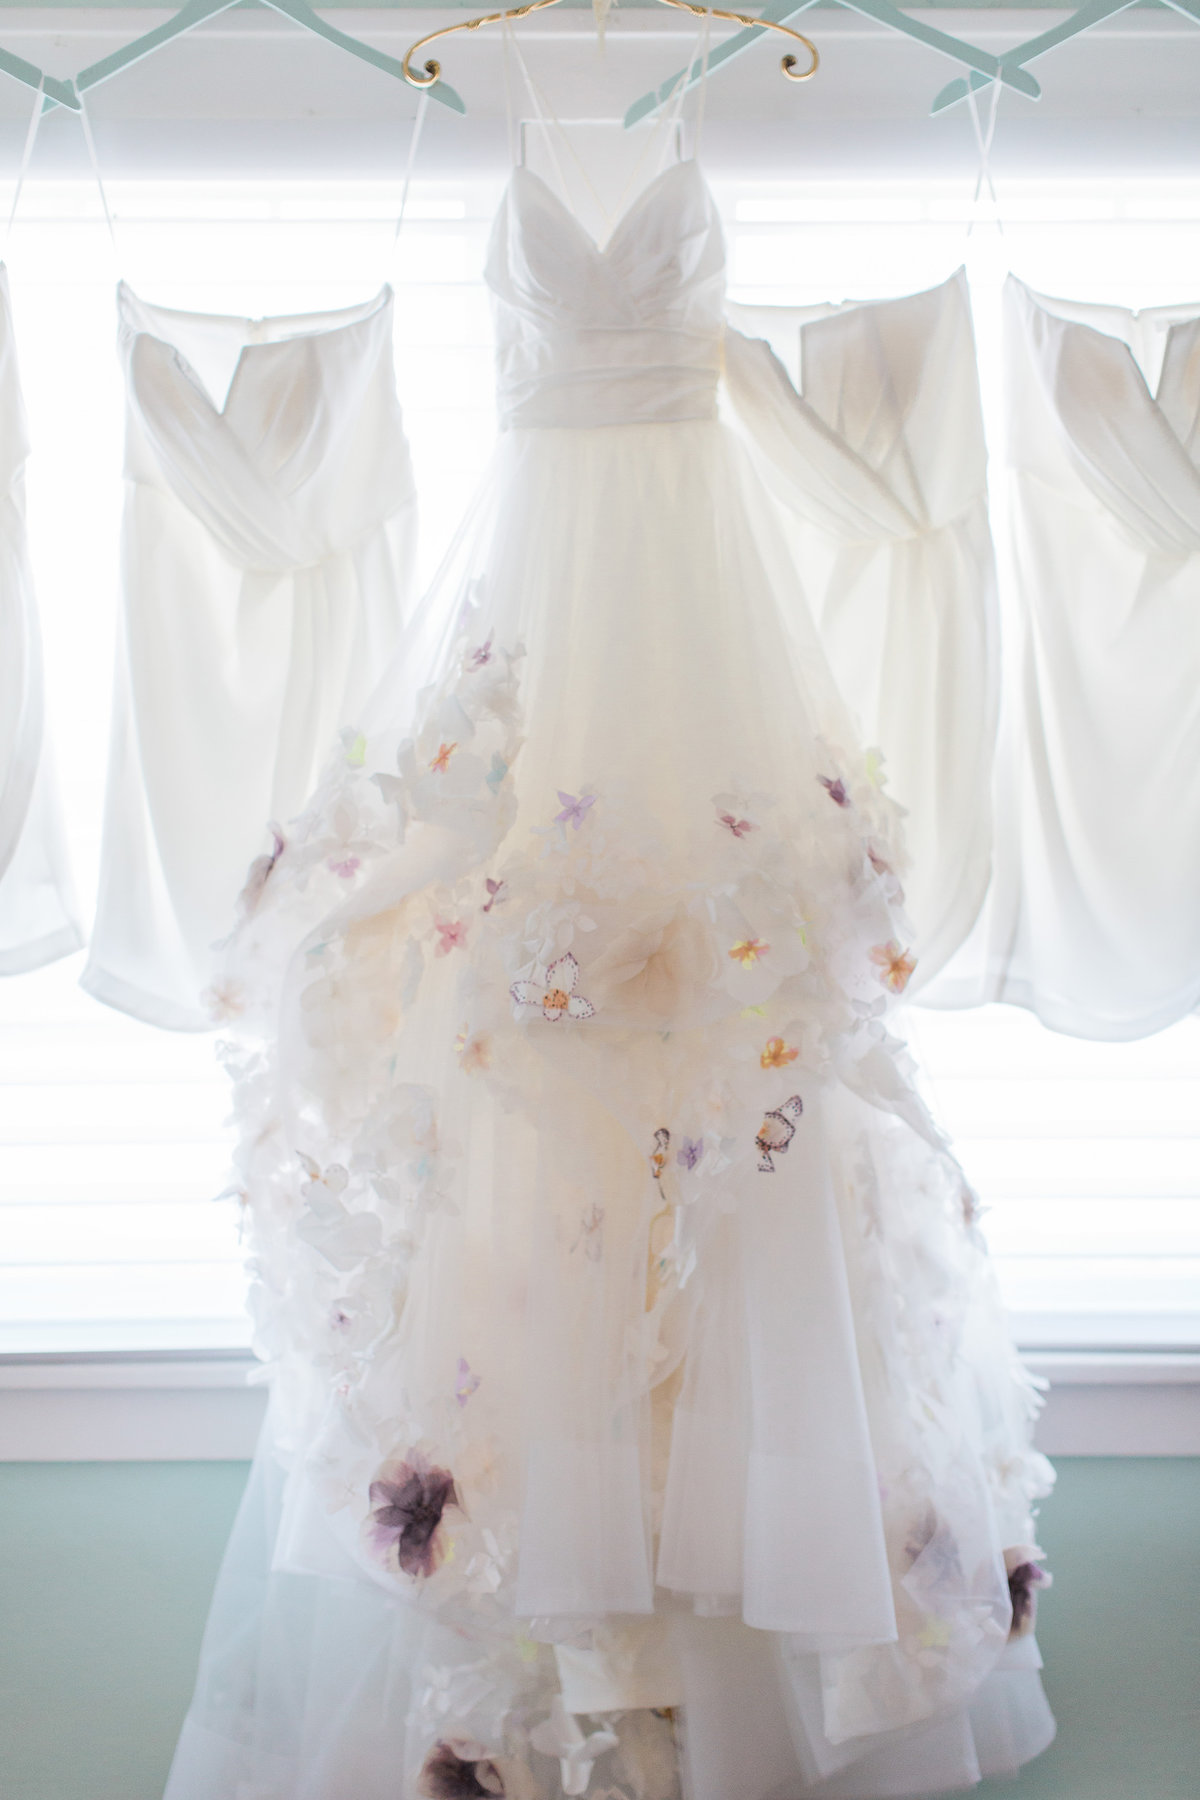 Basilica of the Sacred Heart Wedding Dress Photo